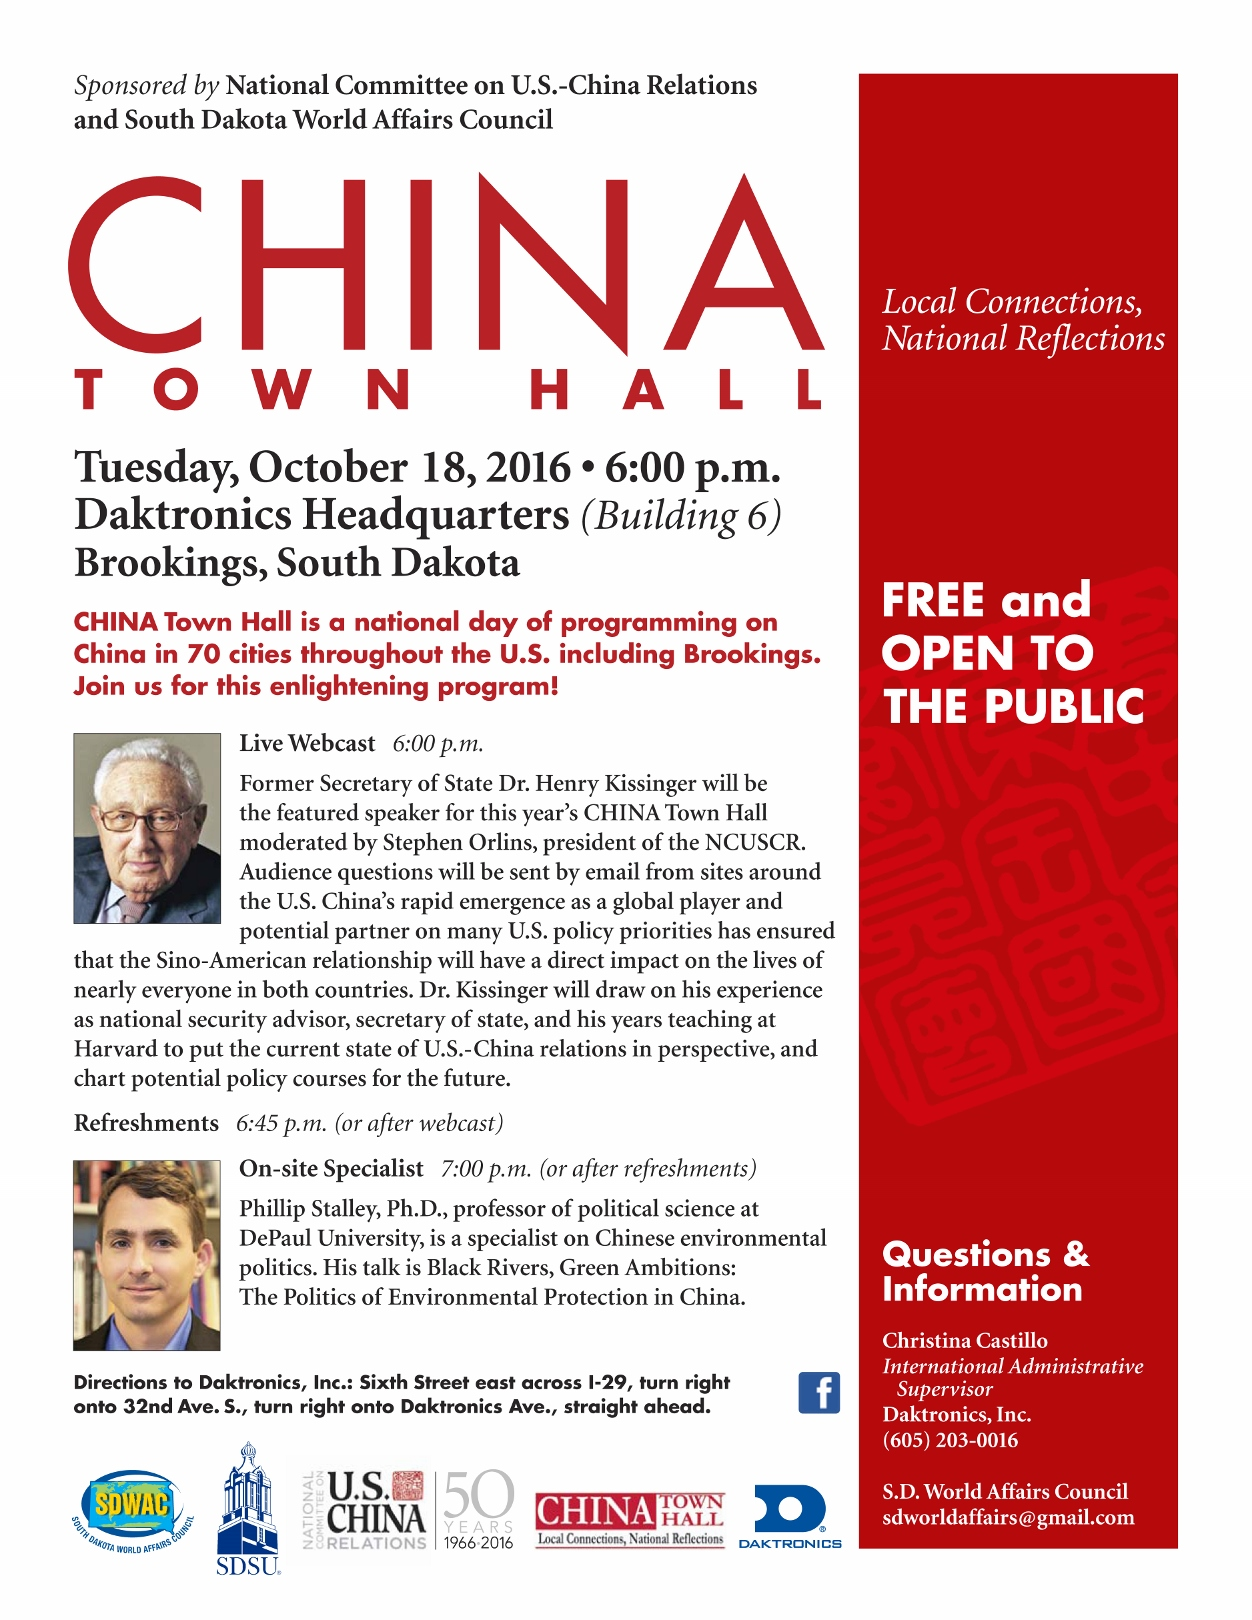 political environment in china Understanding china's political system congressional research service summary this report is designed to provide congress with a perspective on the contemporary political.